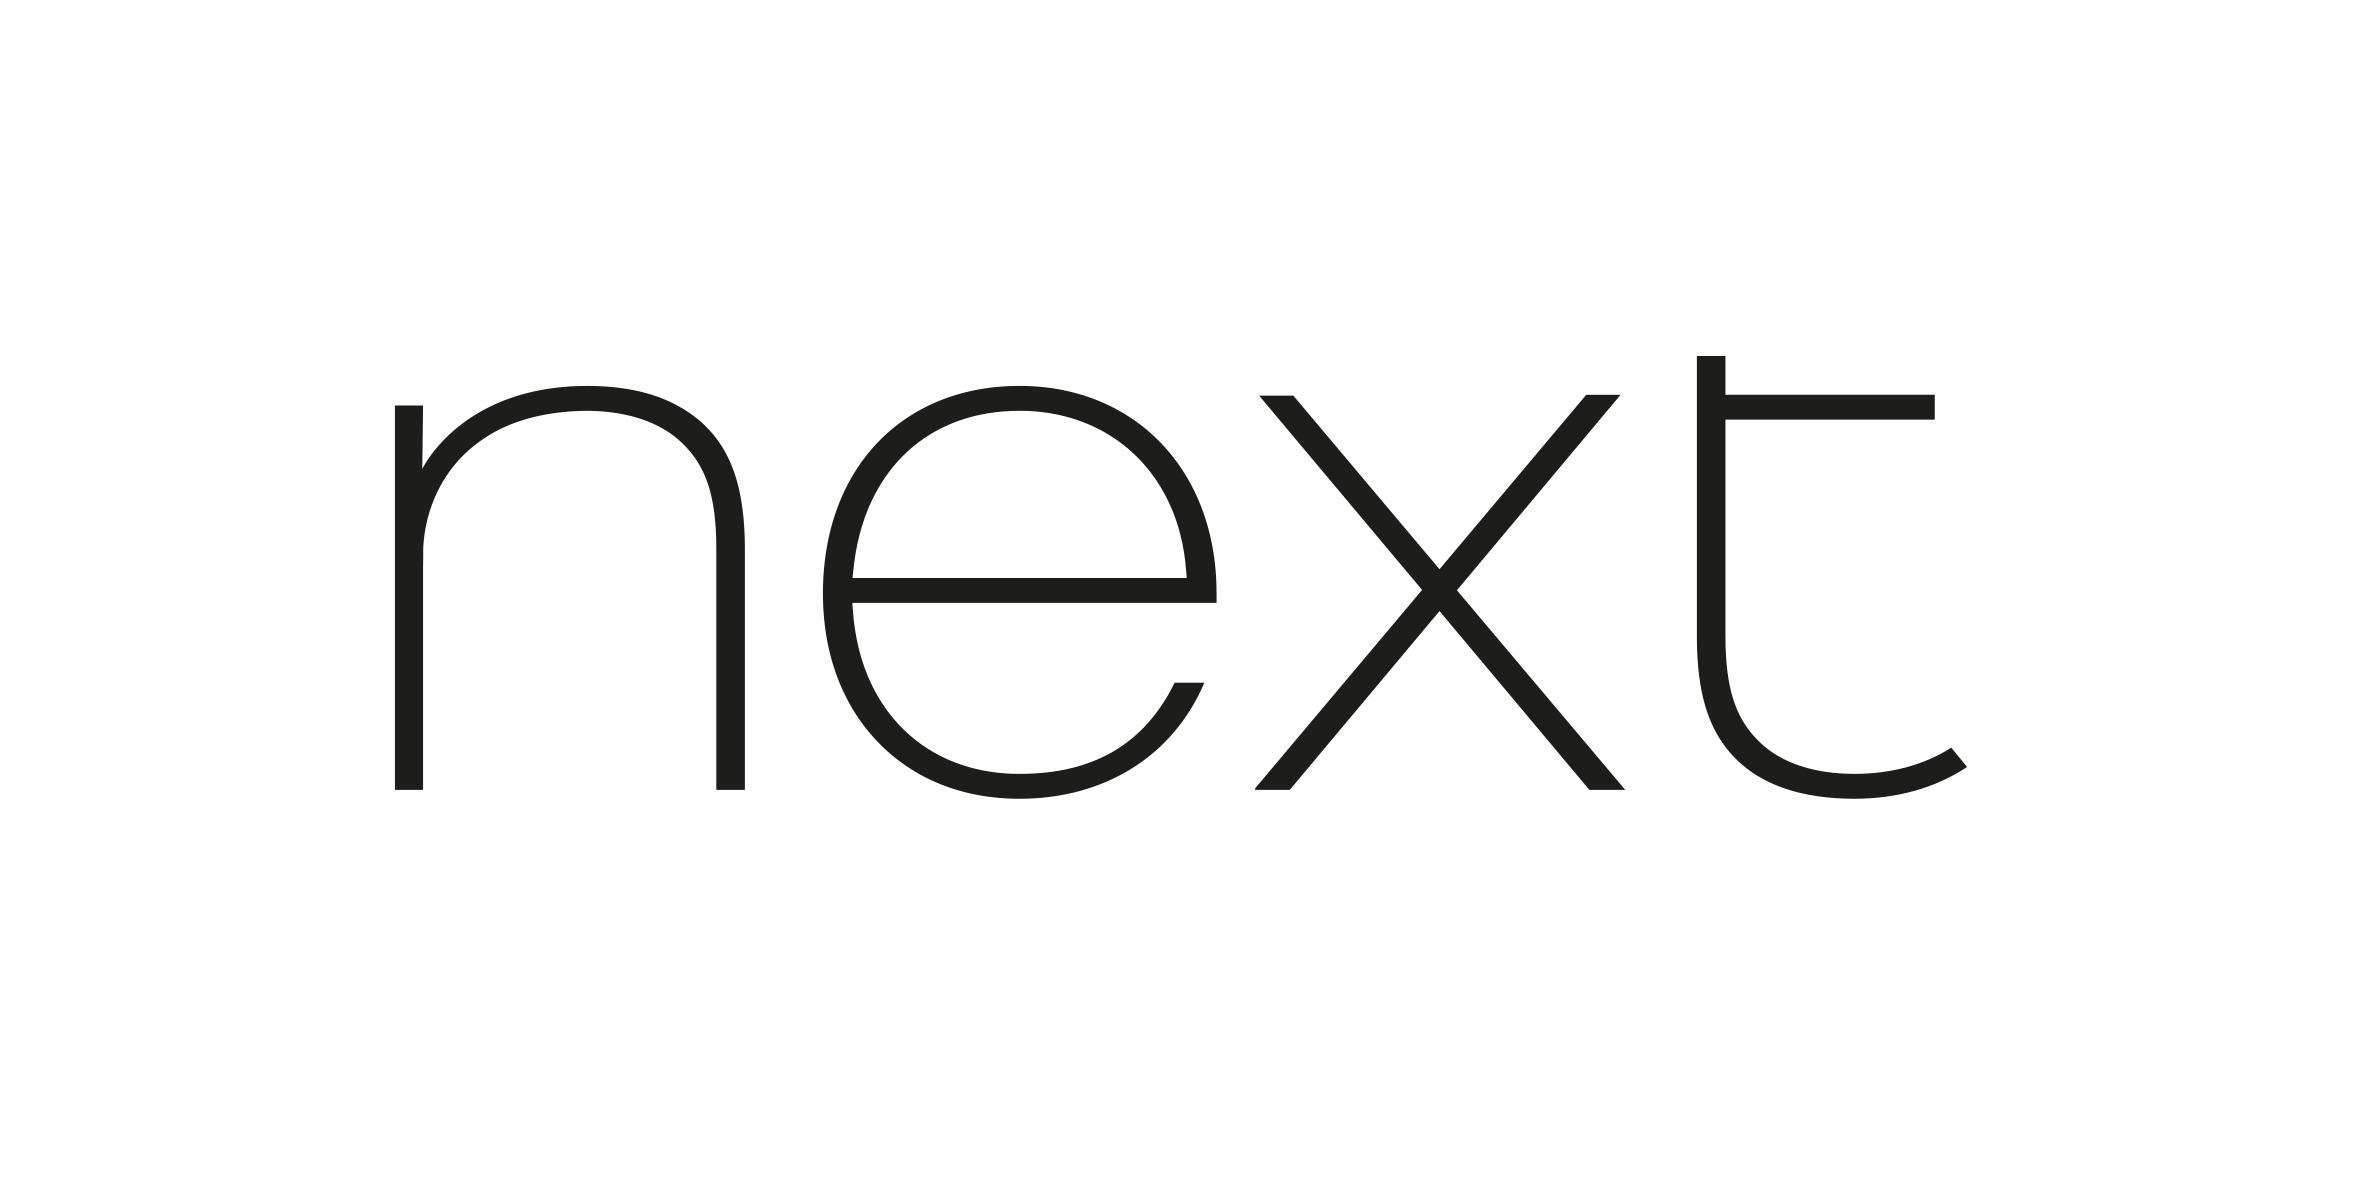 next.co.uk